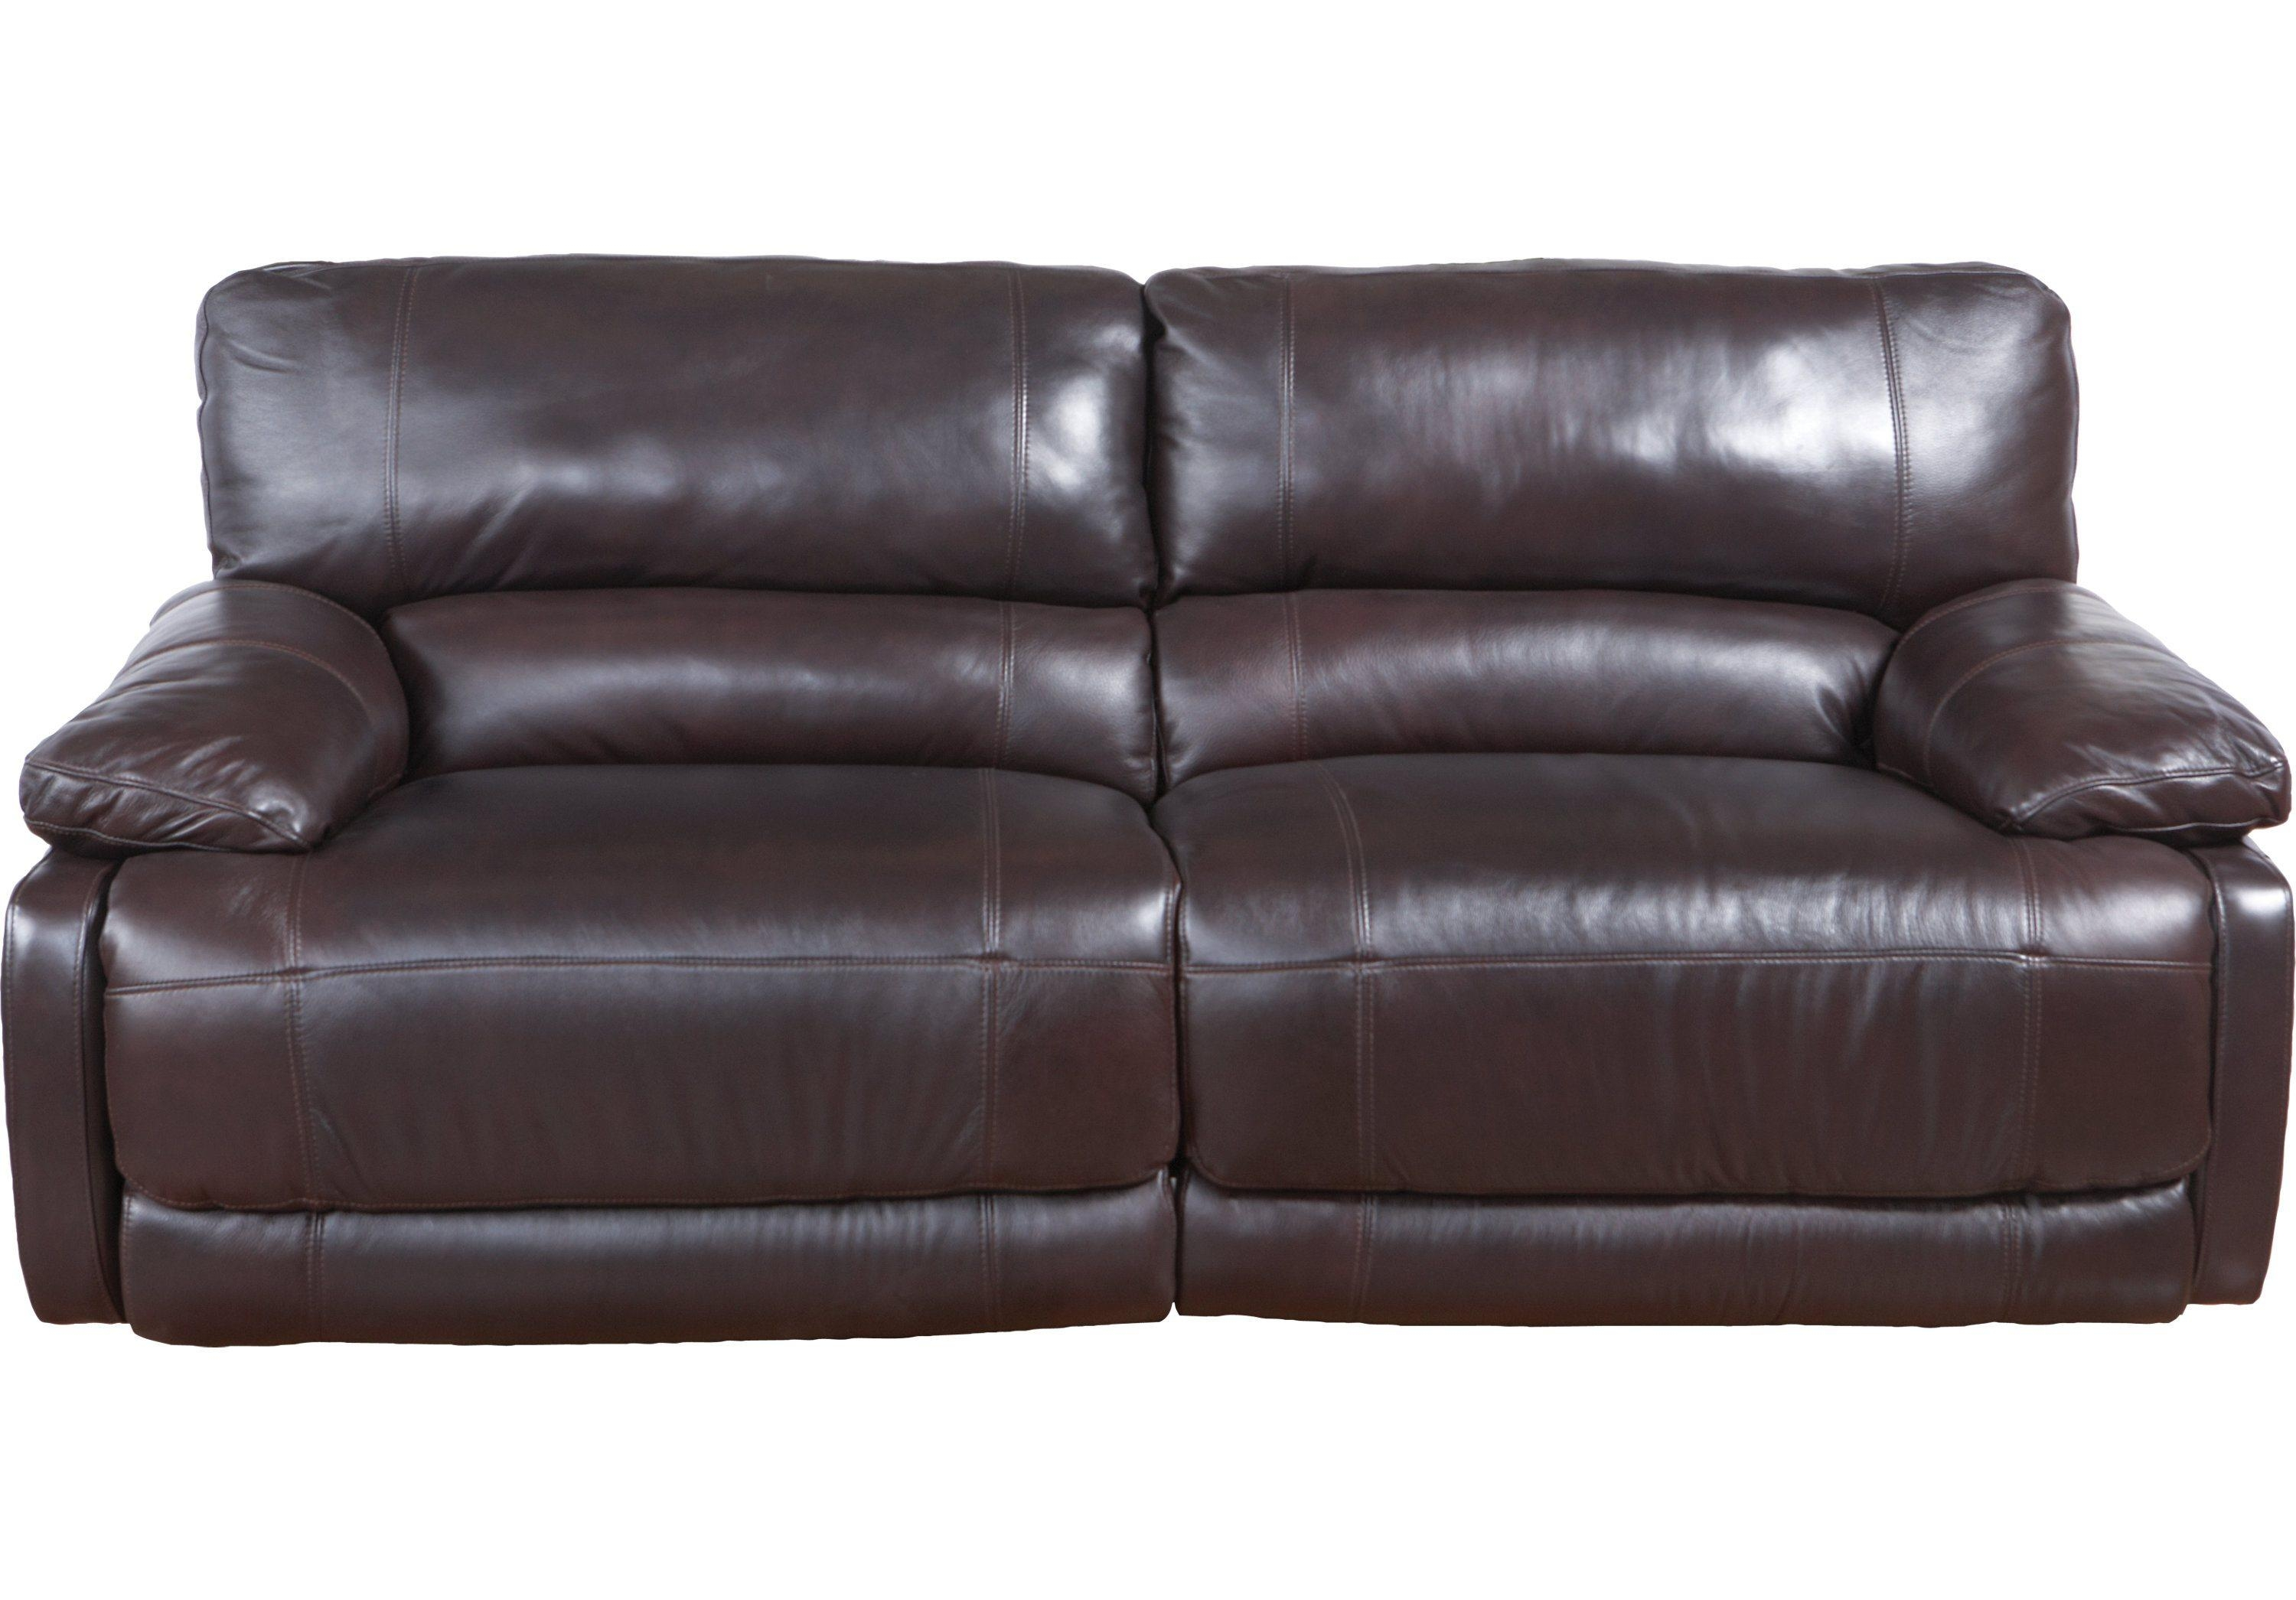 20 Collection of Cindy Crawford Sleeper Sofas